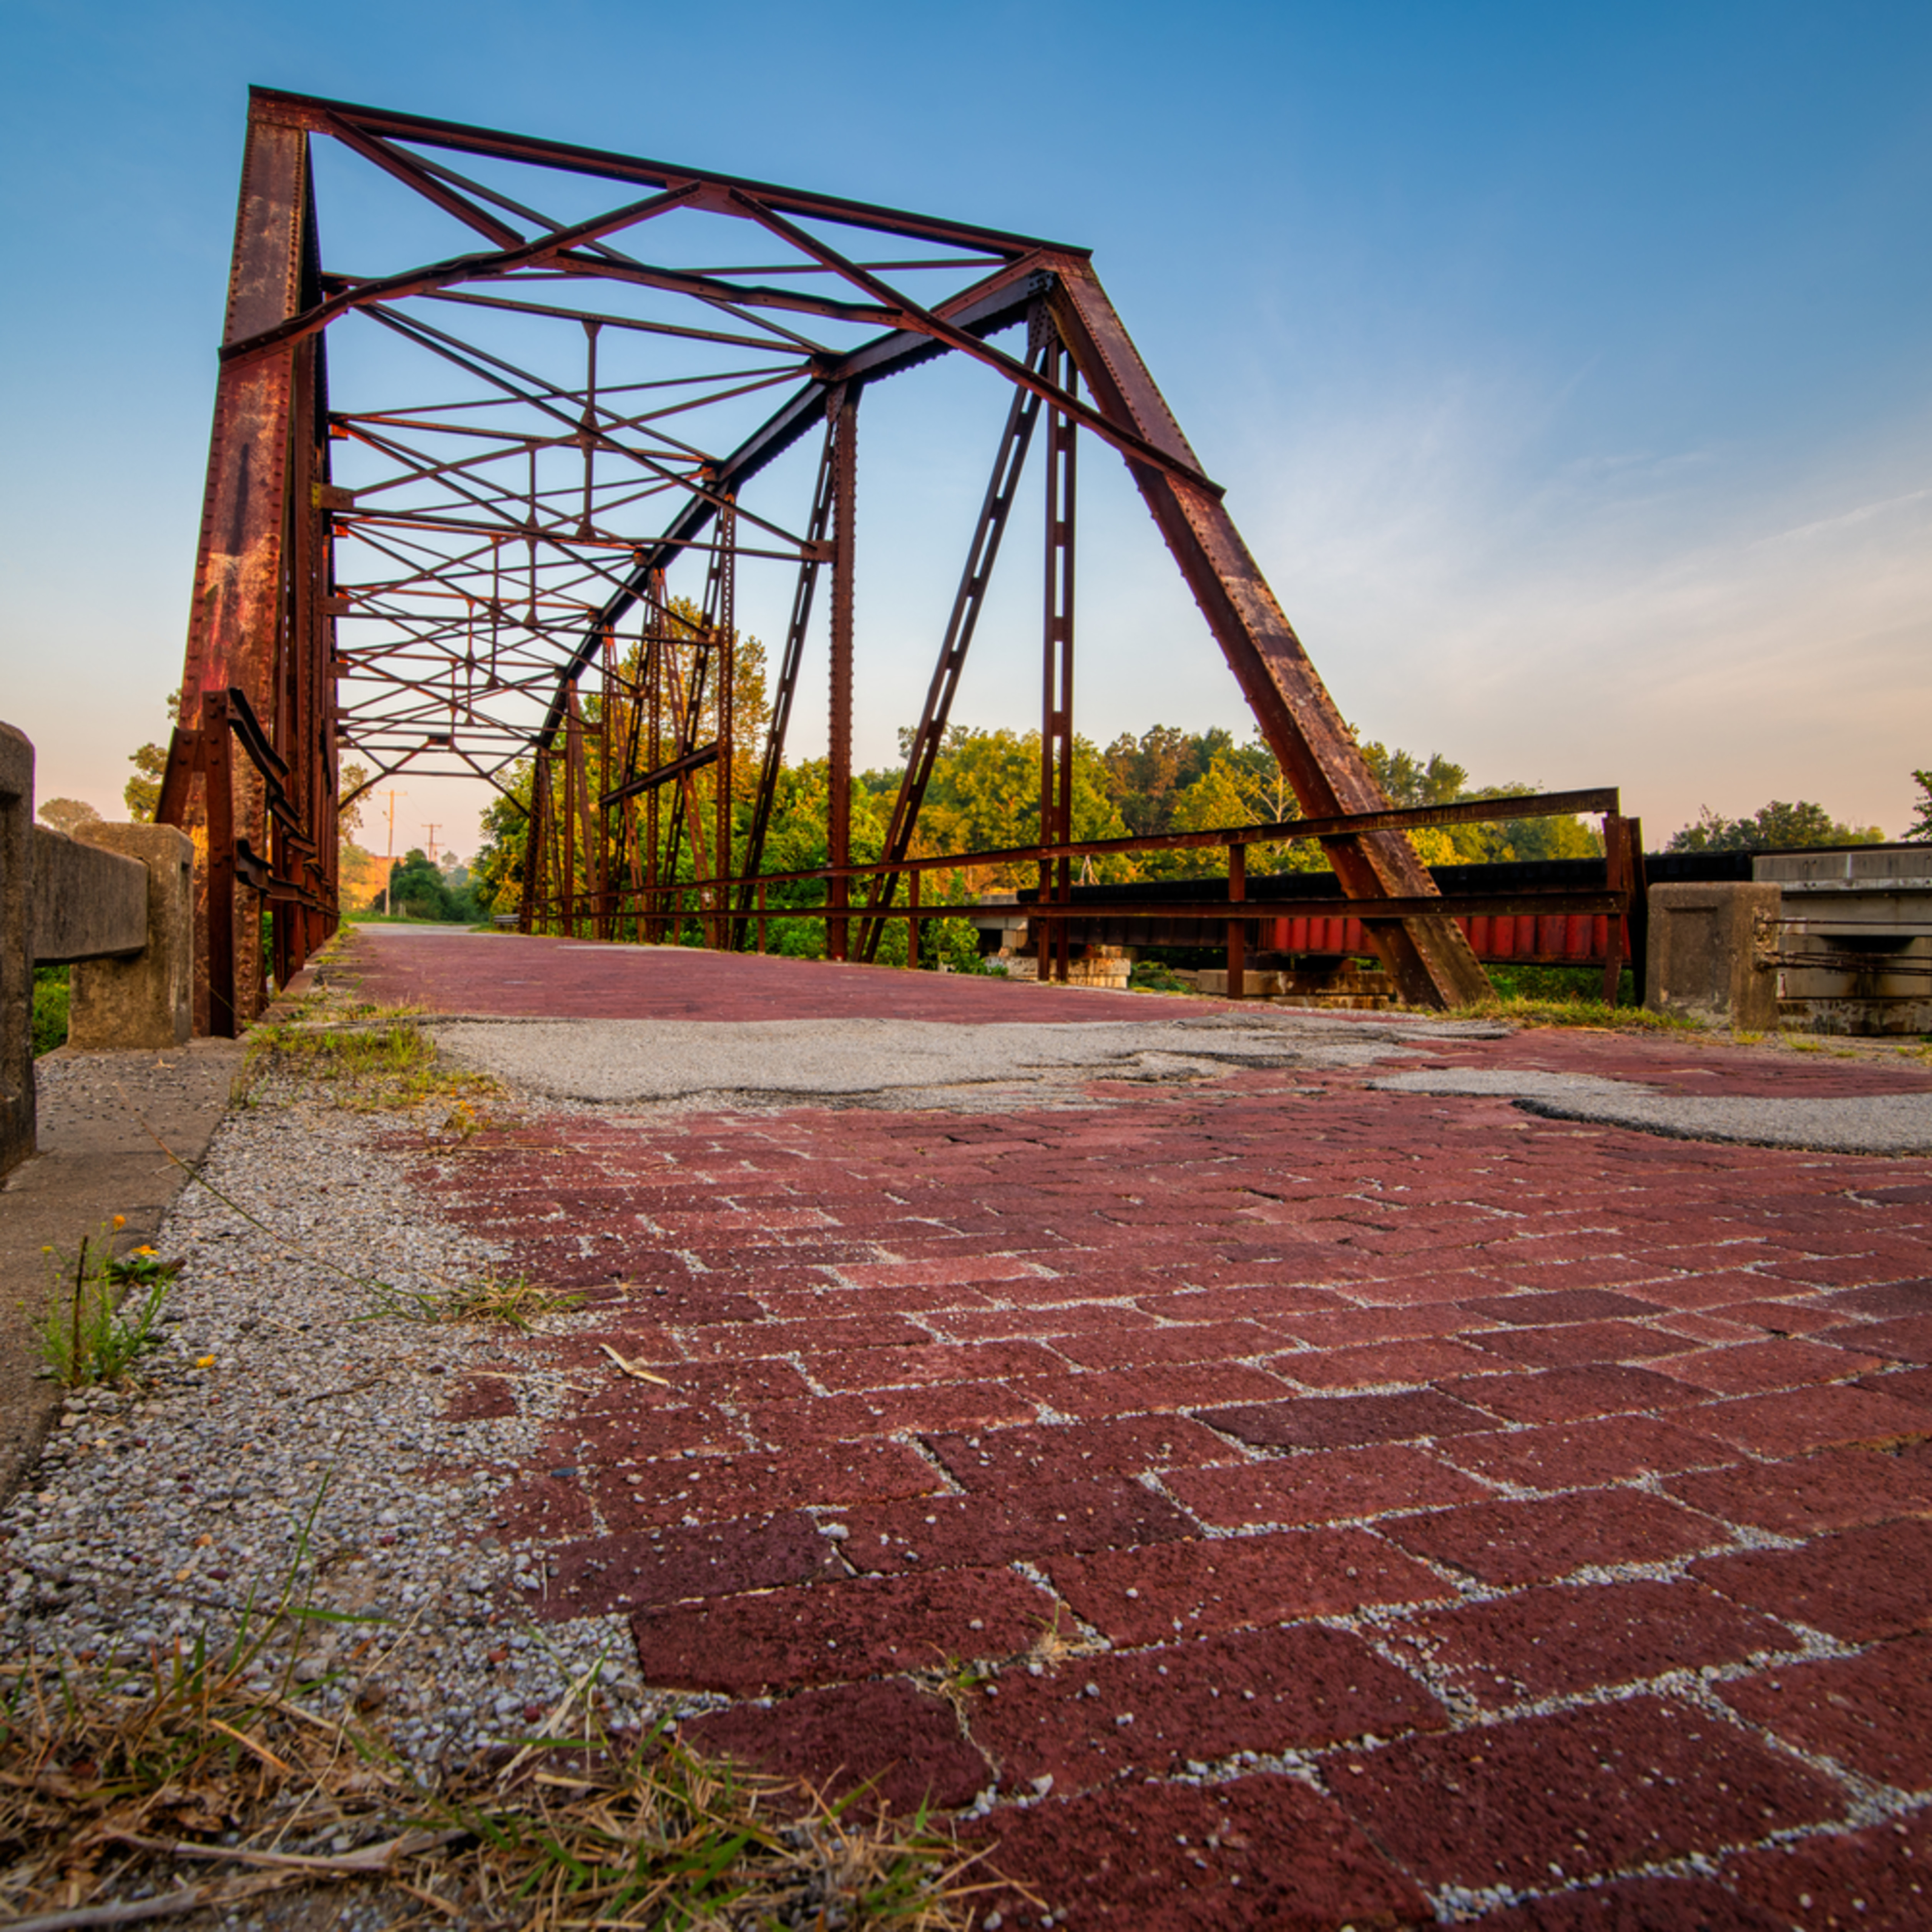 Andy crawford photography route 66 rock creek bridge 1 nnnt66